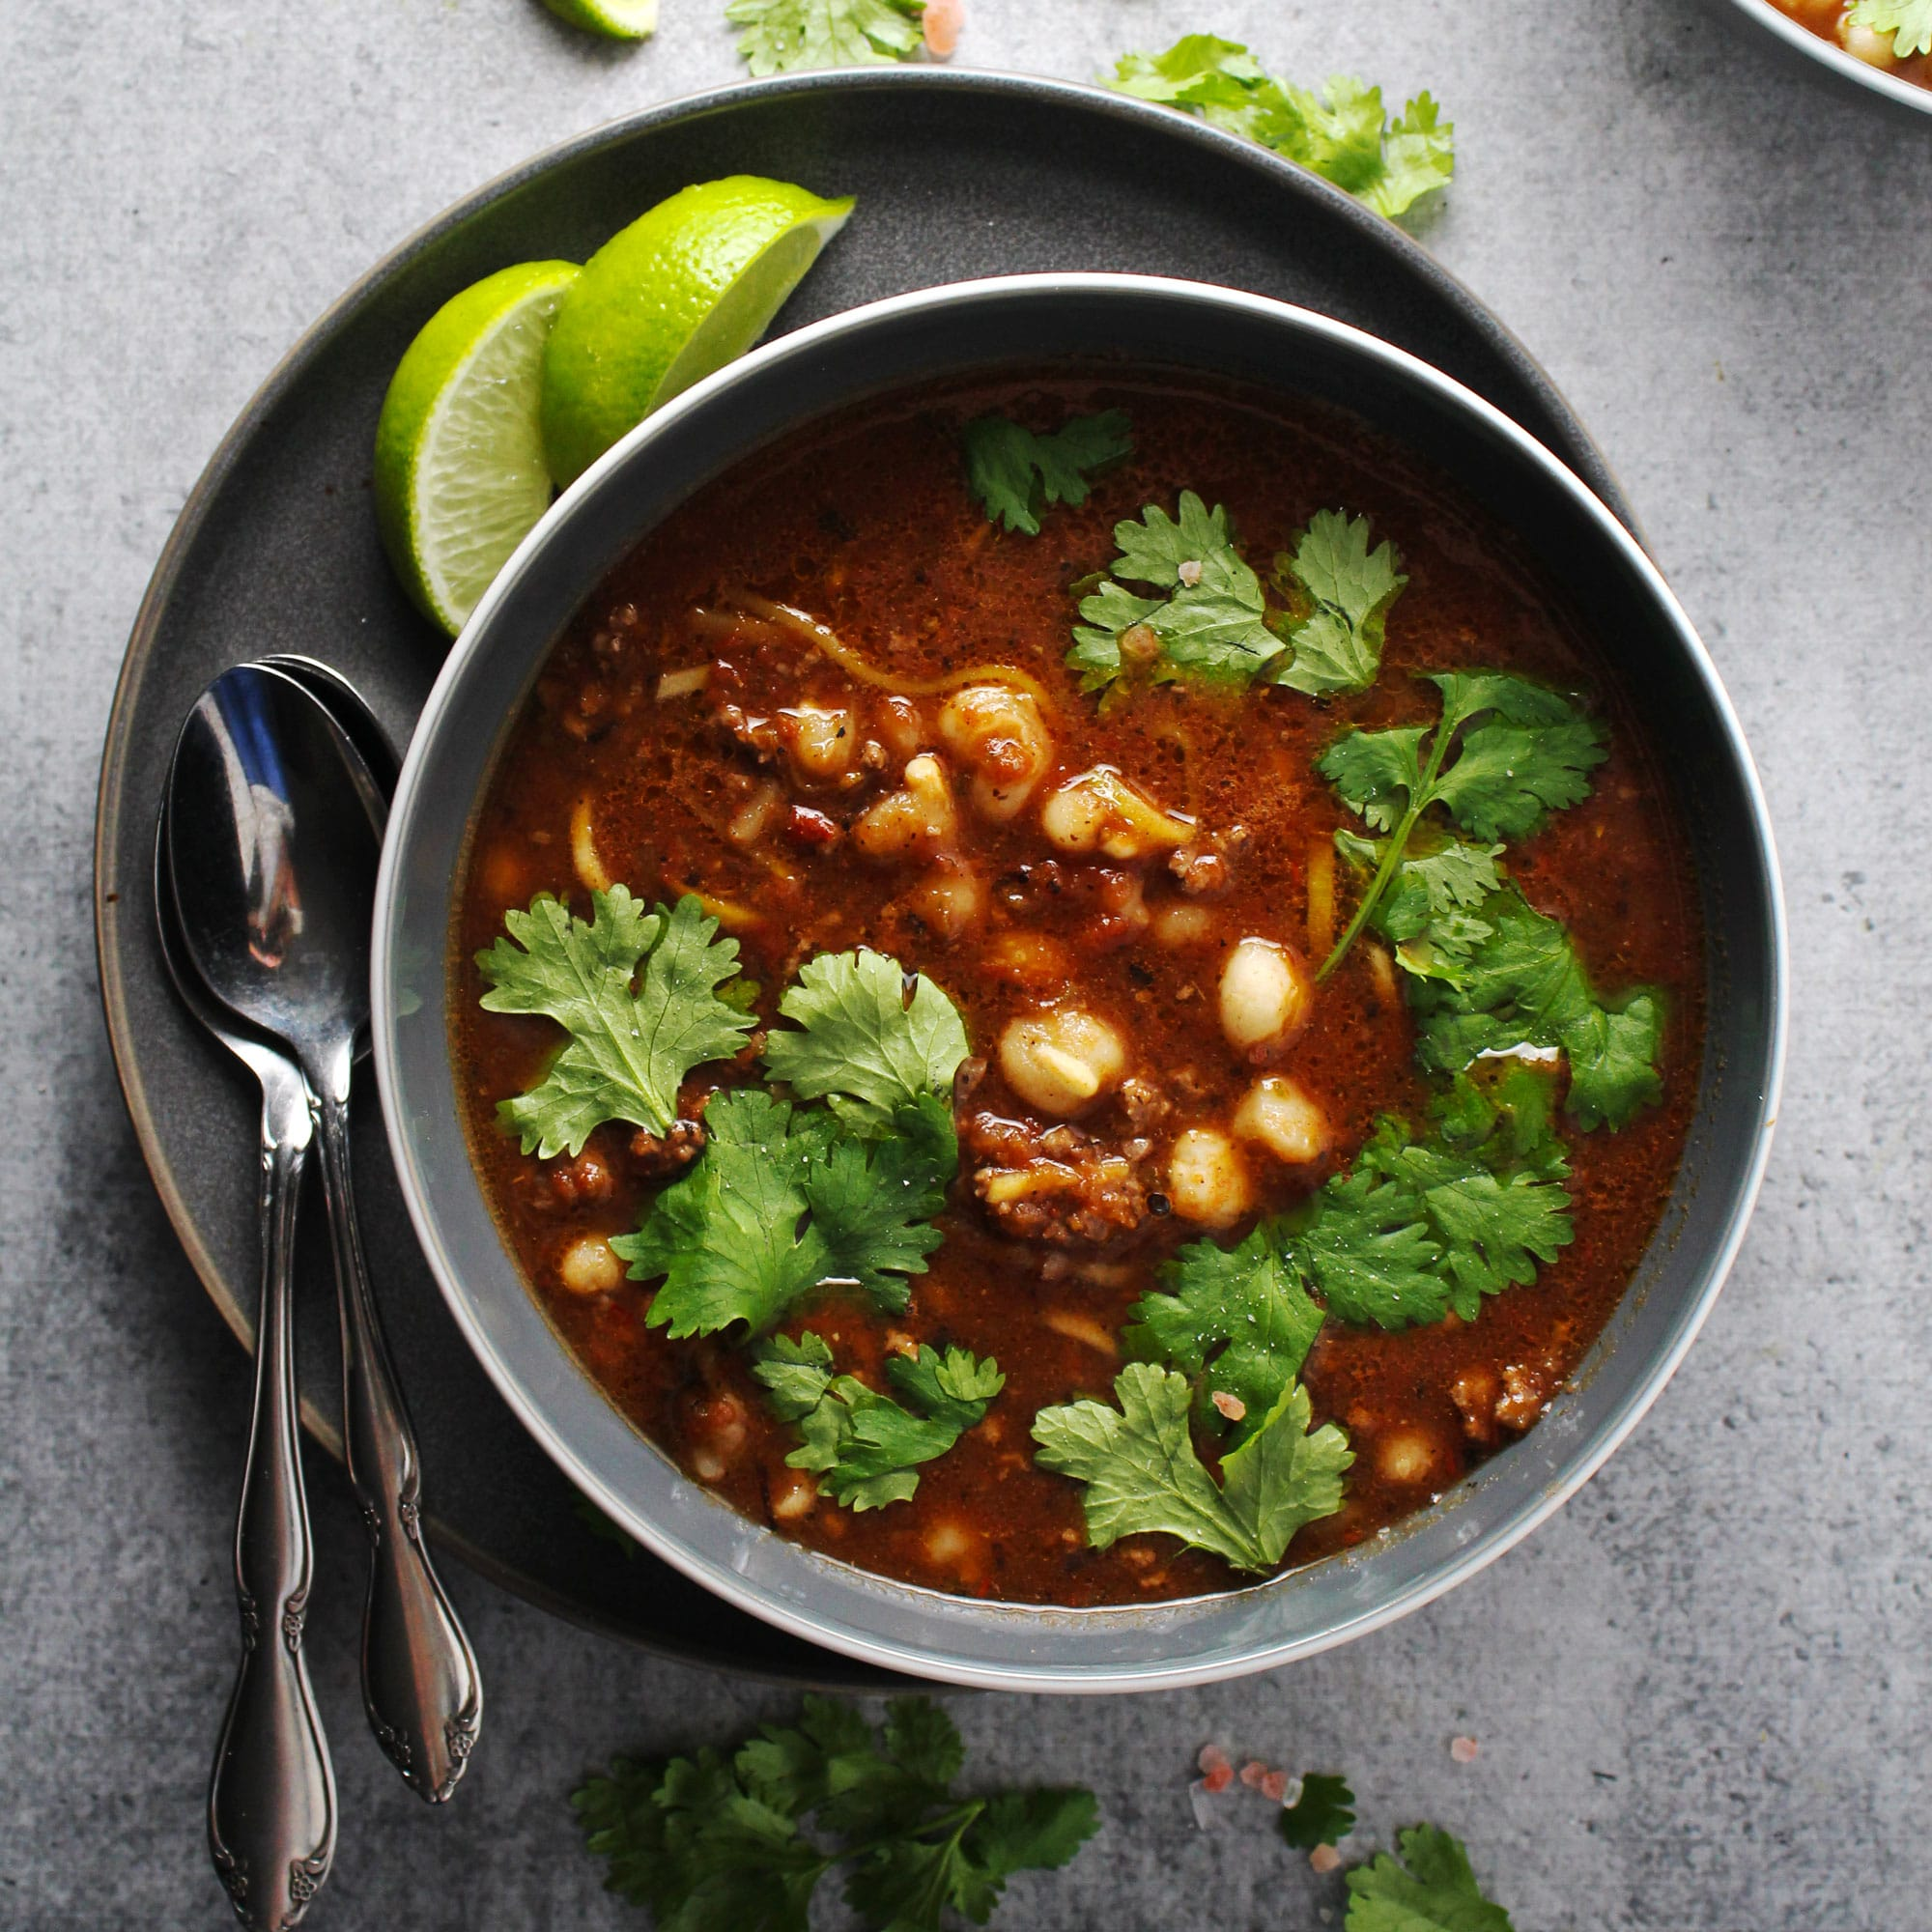 Picture of pozole rojo stew in gray bowl.